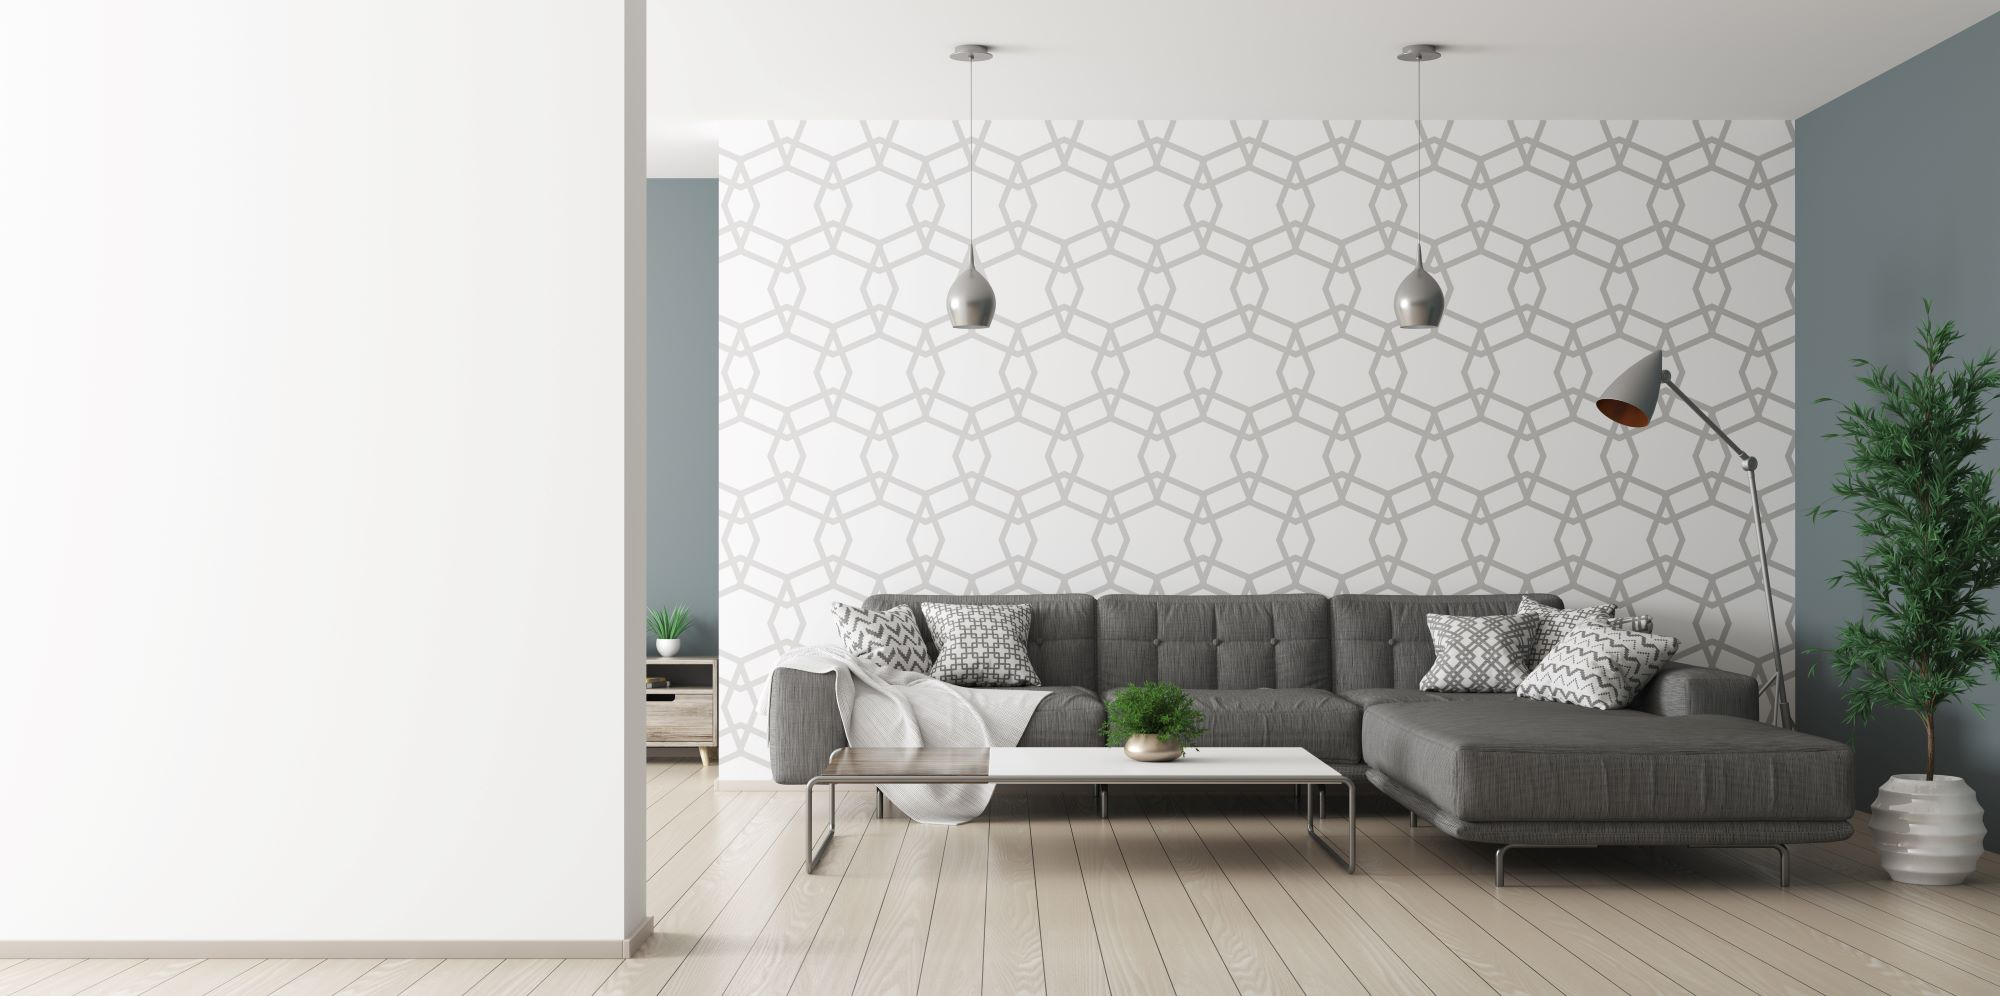 15 Unique Wall Decoration Ideas For The Living Room The Lakeside Collection